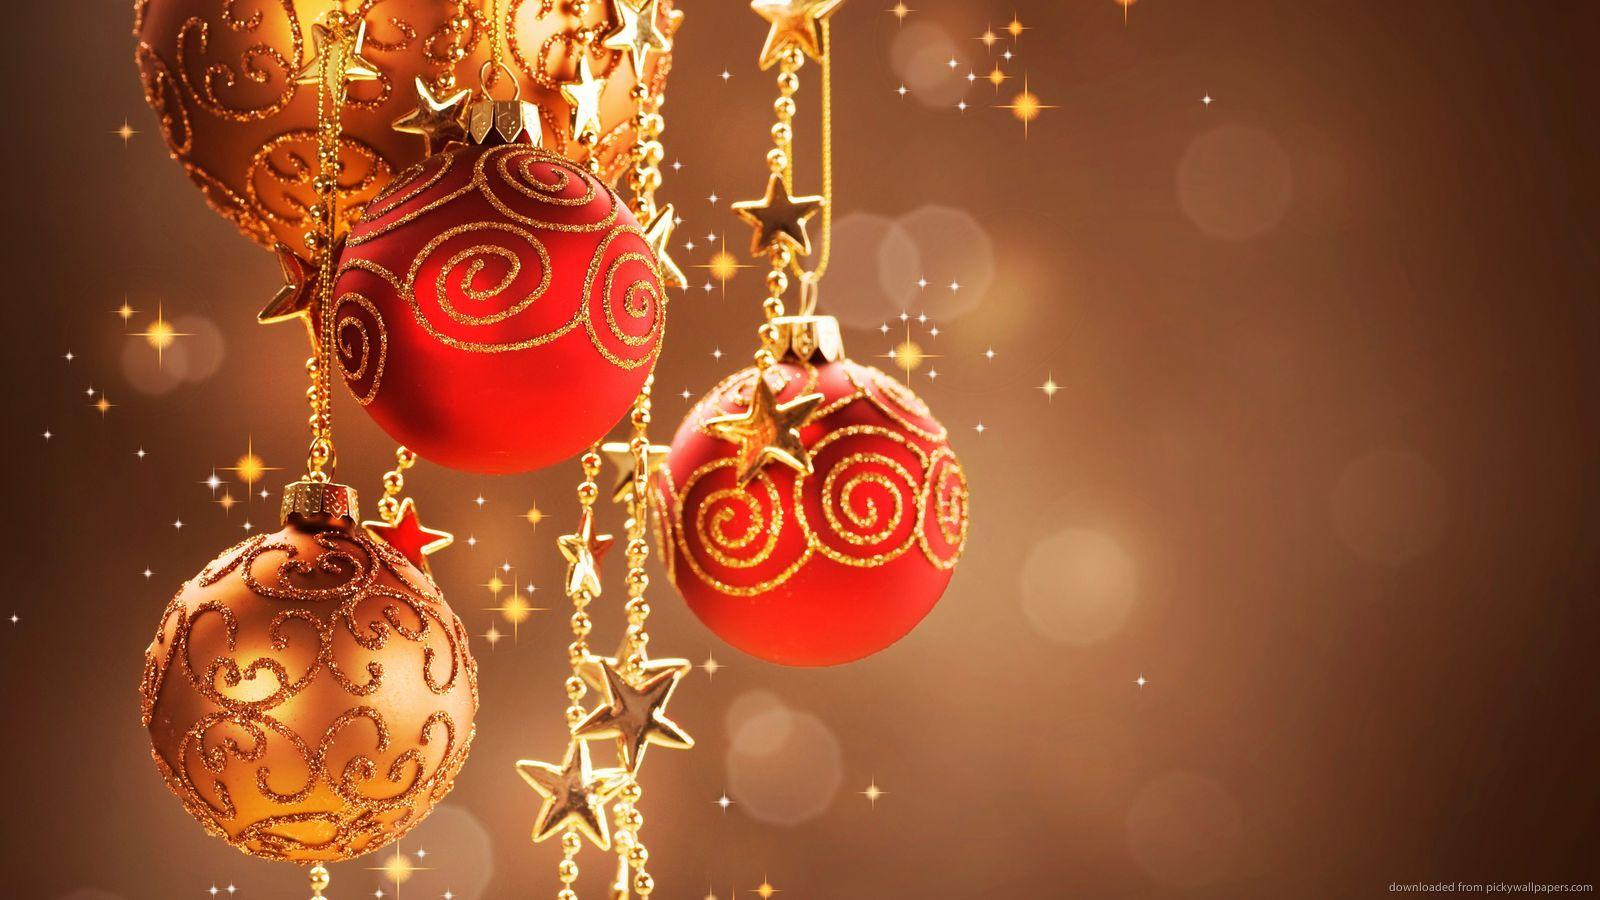 Download 1600x900 Christmas Decorations Ultra HD Wallpapers